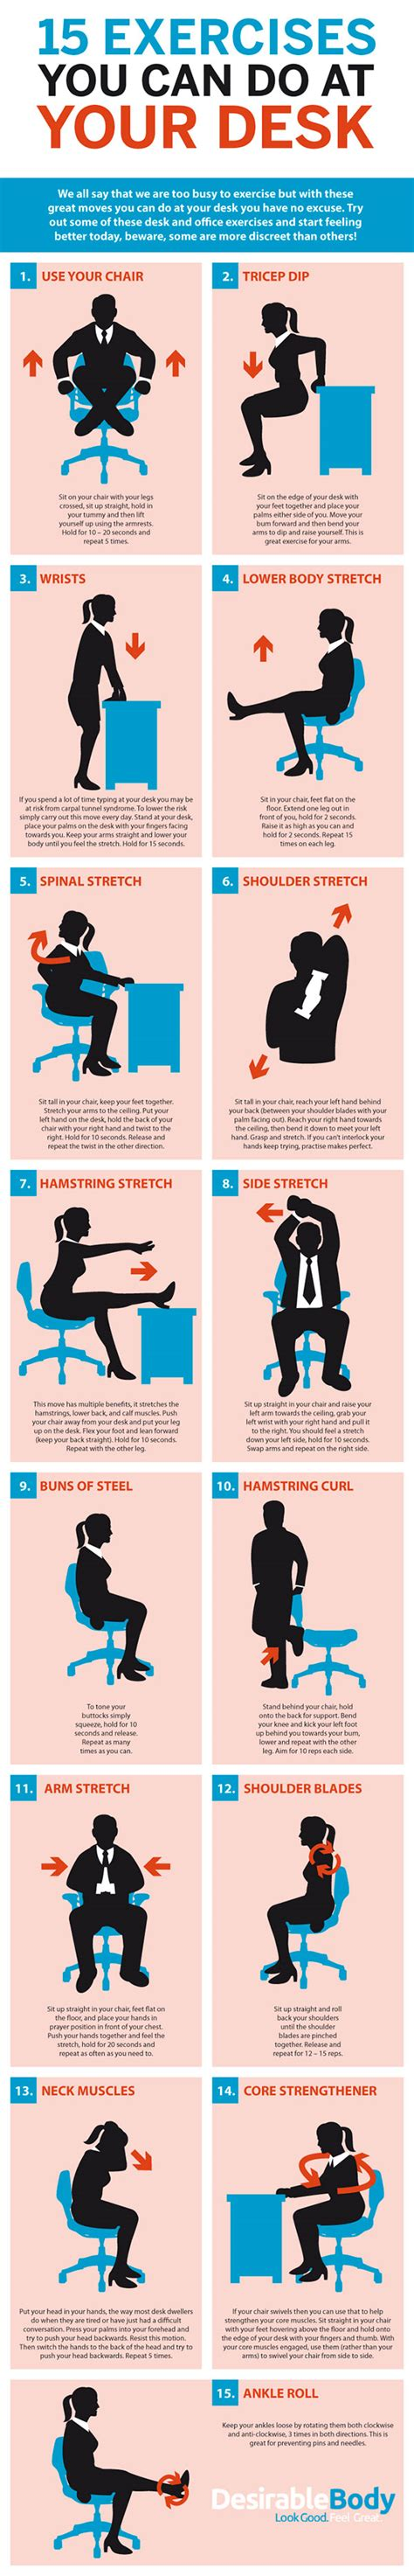 workout at your desk deskercise 15 simple exercises you can do at your desk